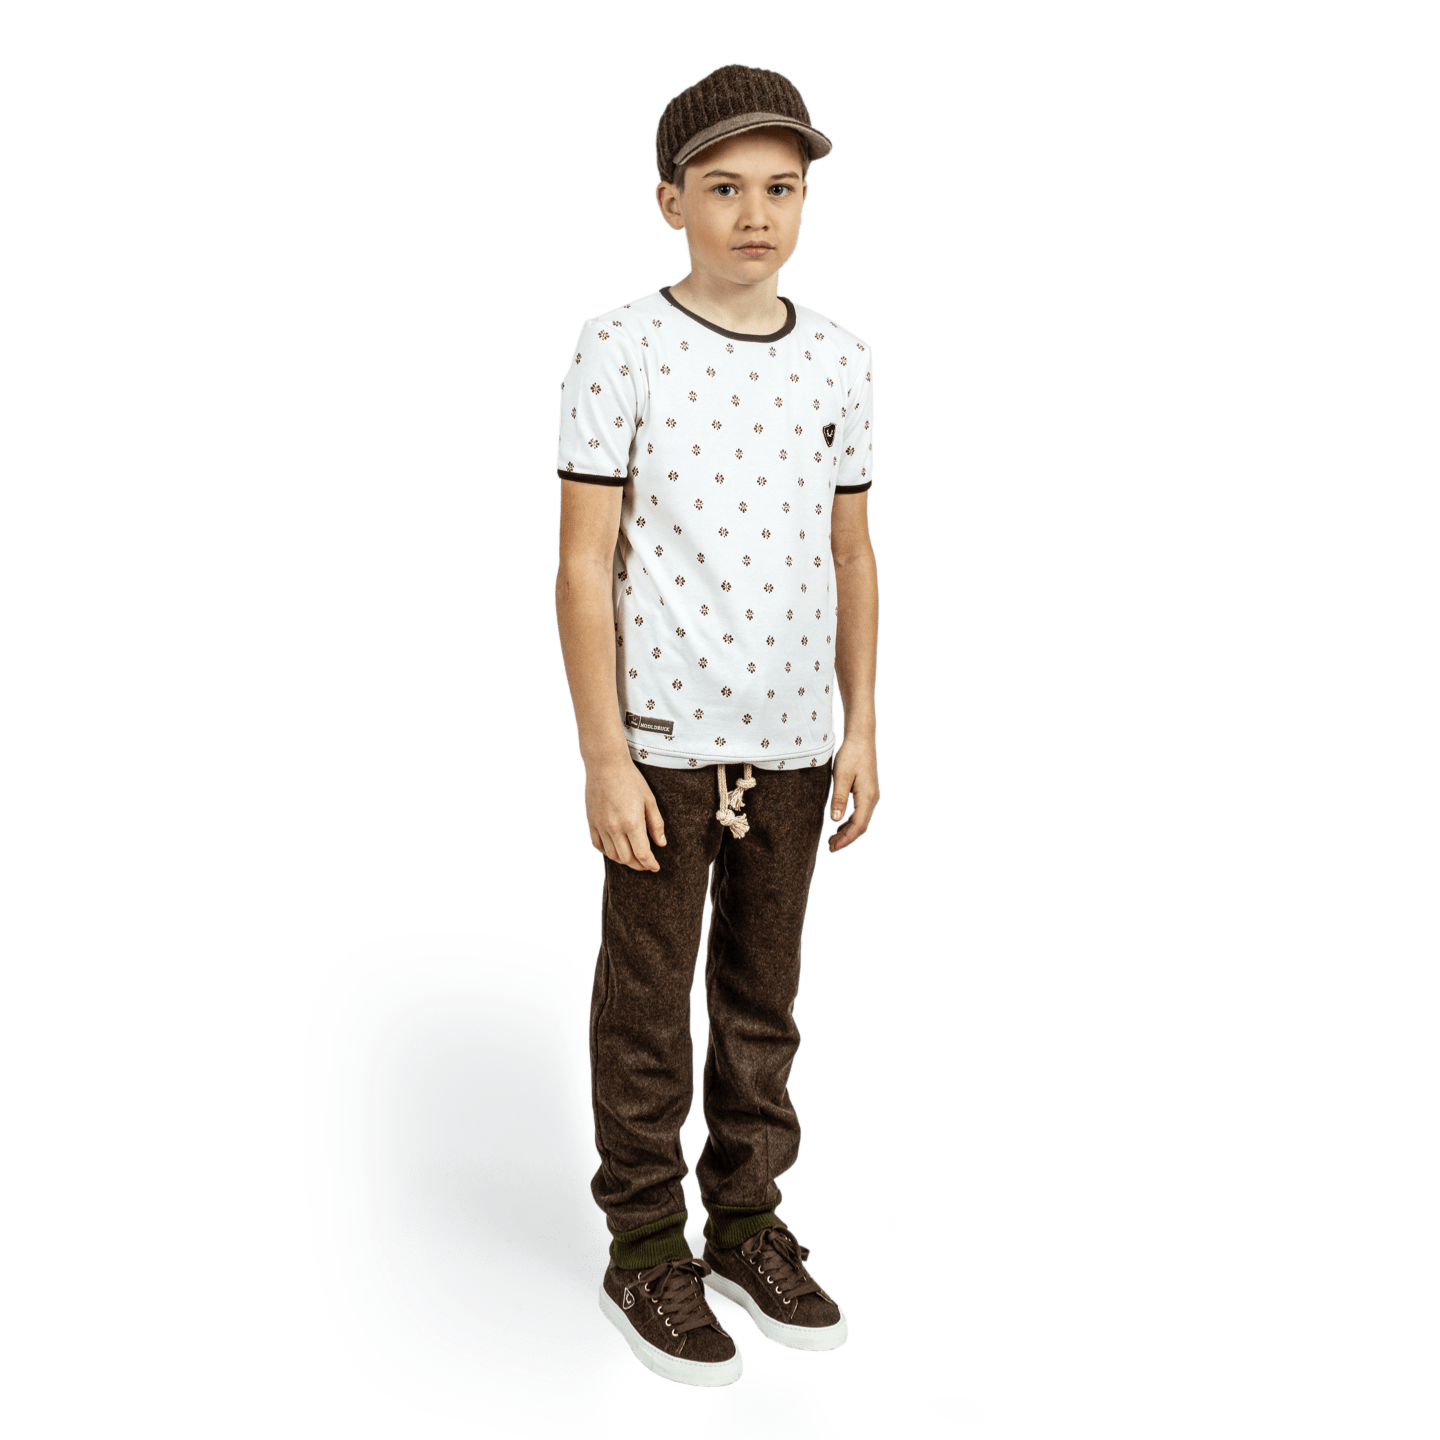 Strizi-Kinder-Holzmodlshirt-look